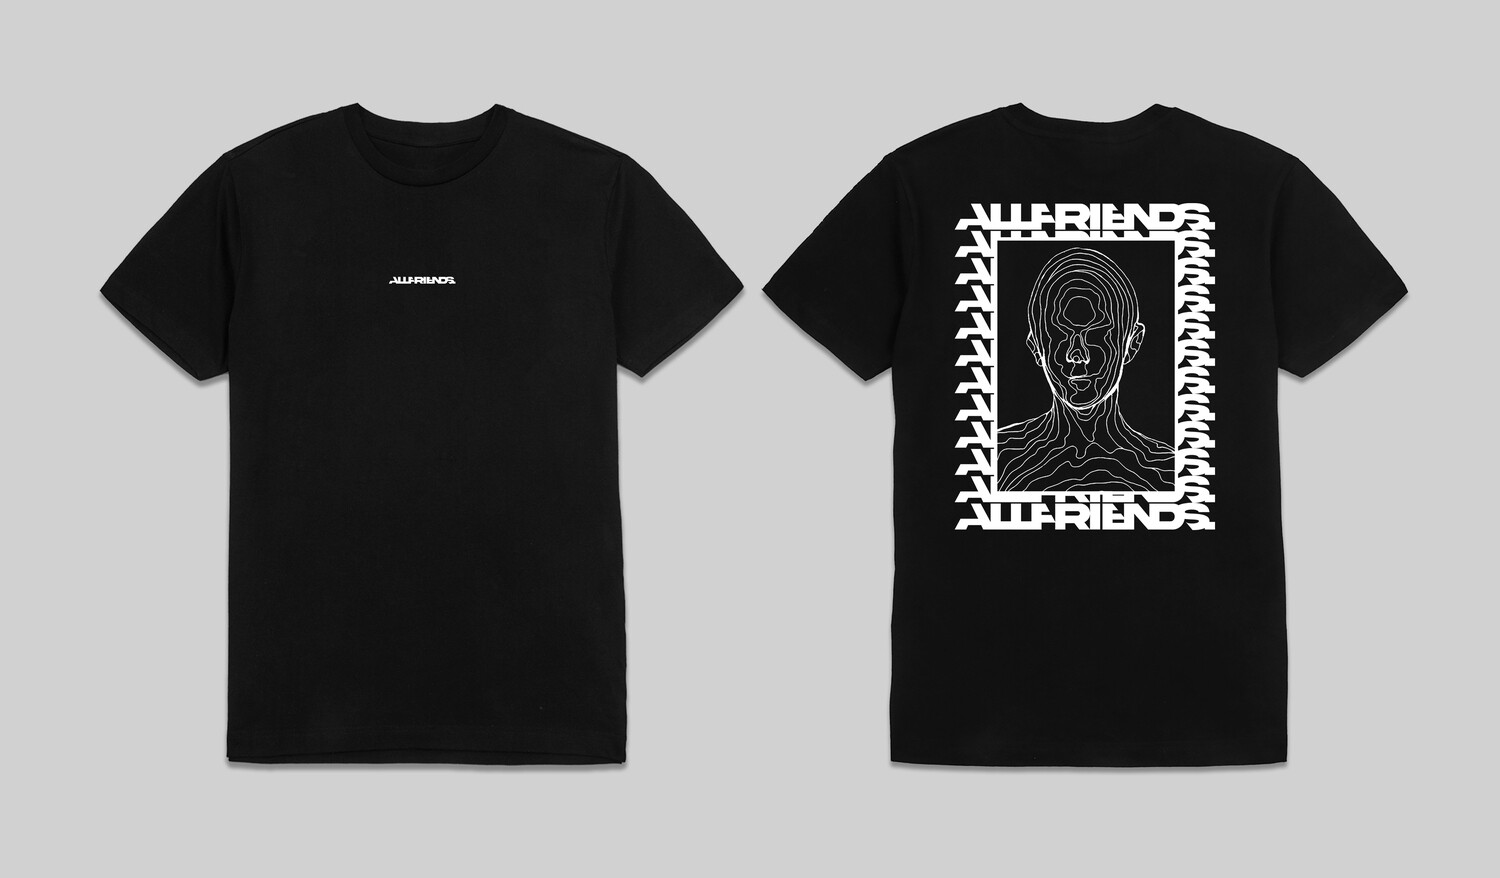 AWAKENINGS T-SHIRT